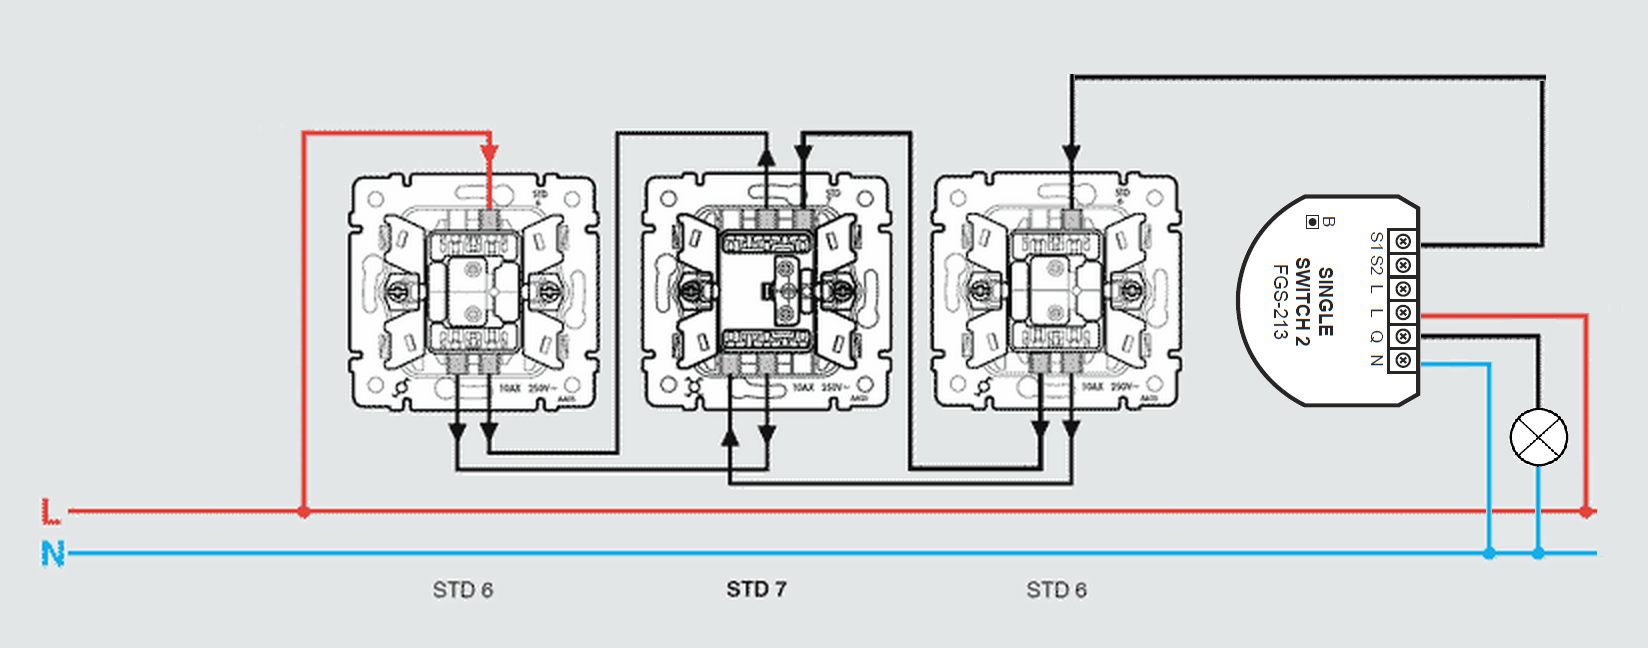 Multiway Switching And Fibaro Single Switch 2 Blog Together With Two Way Light Wiring Diagram Diagrams Std 6 3